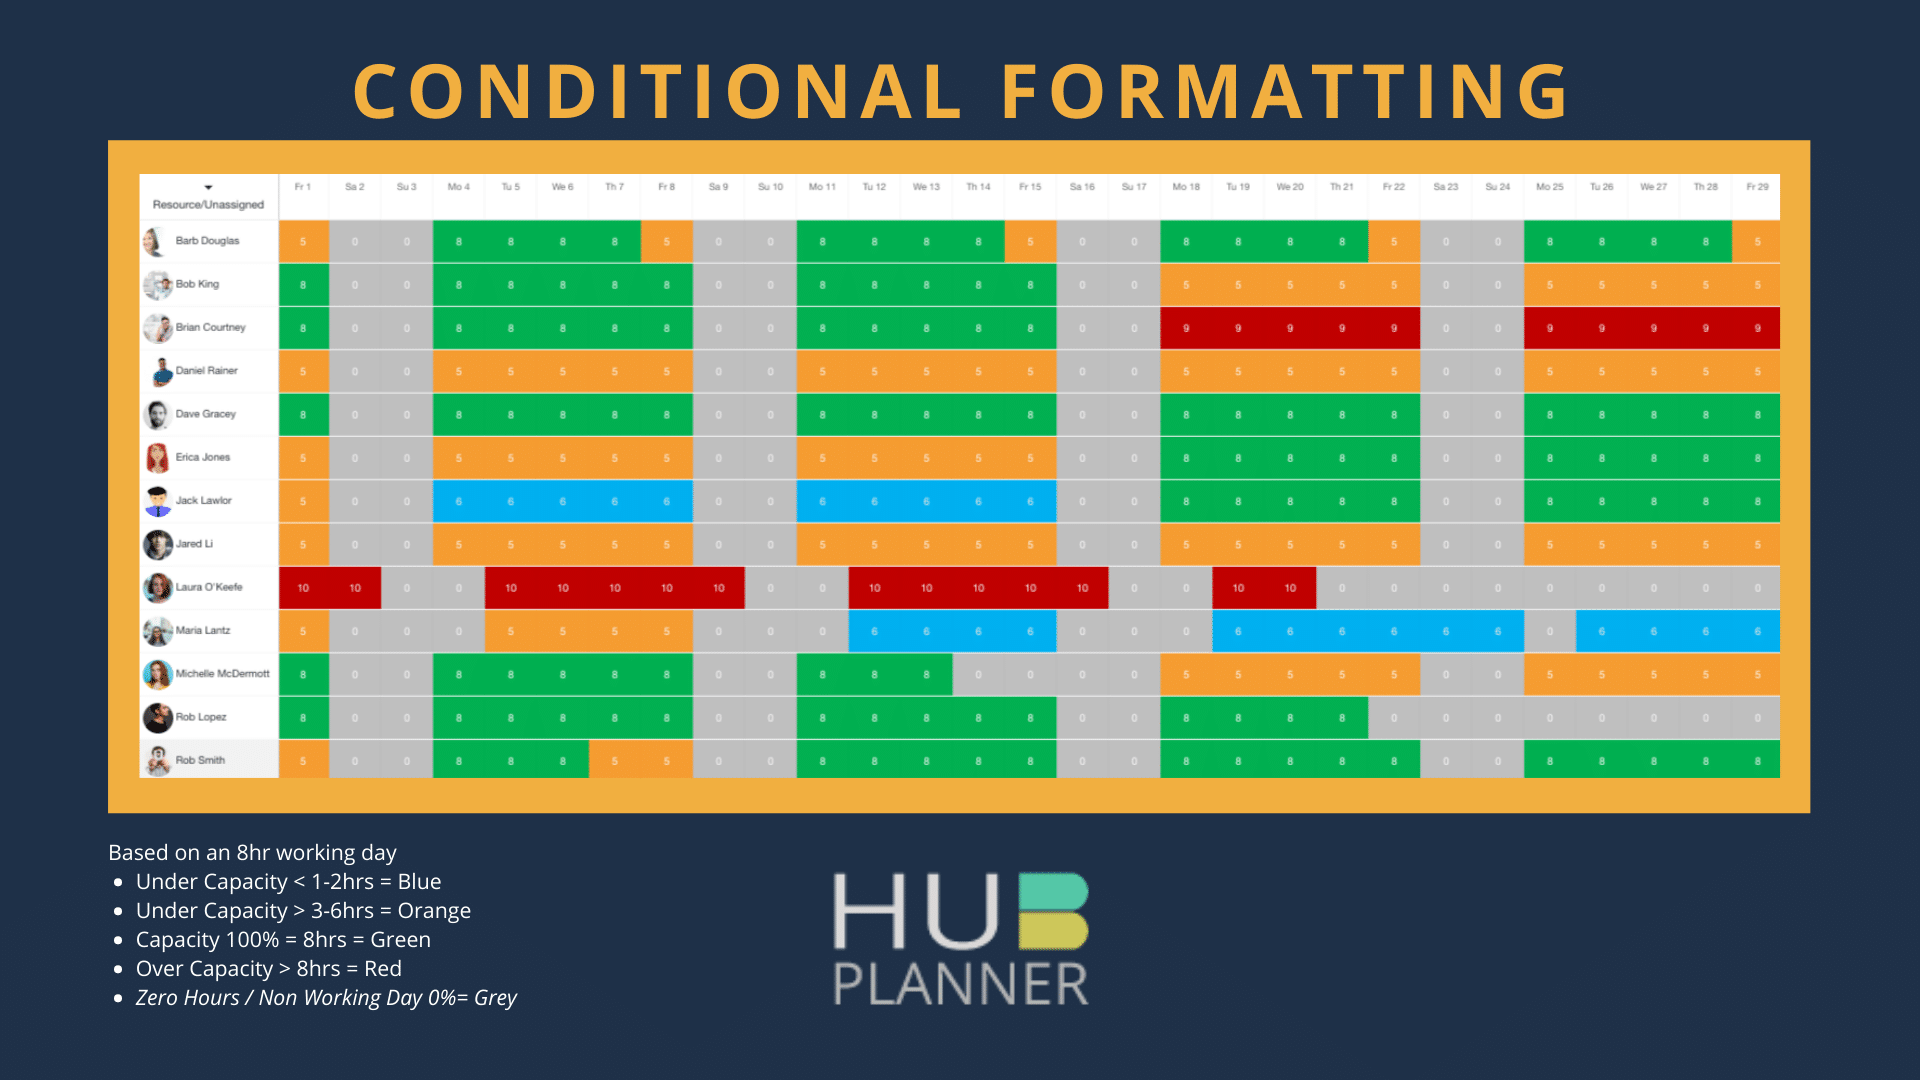 Heat Map Conditional Formatting